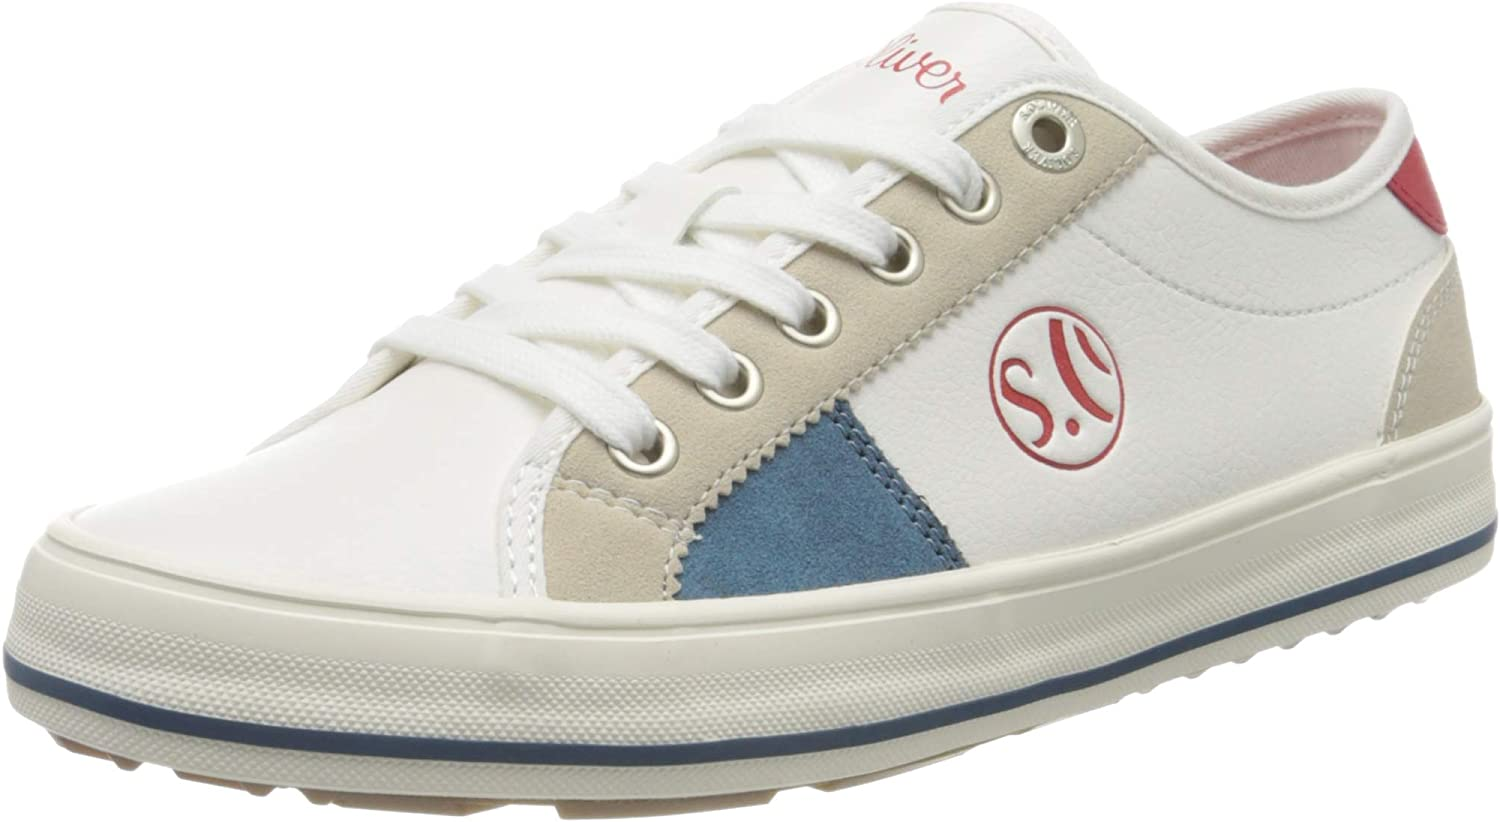 s.Oliver Women's Sneaker Shipping included Low-top Charlotte Mall